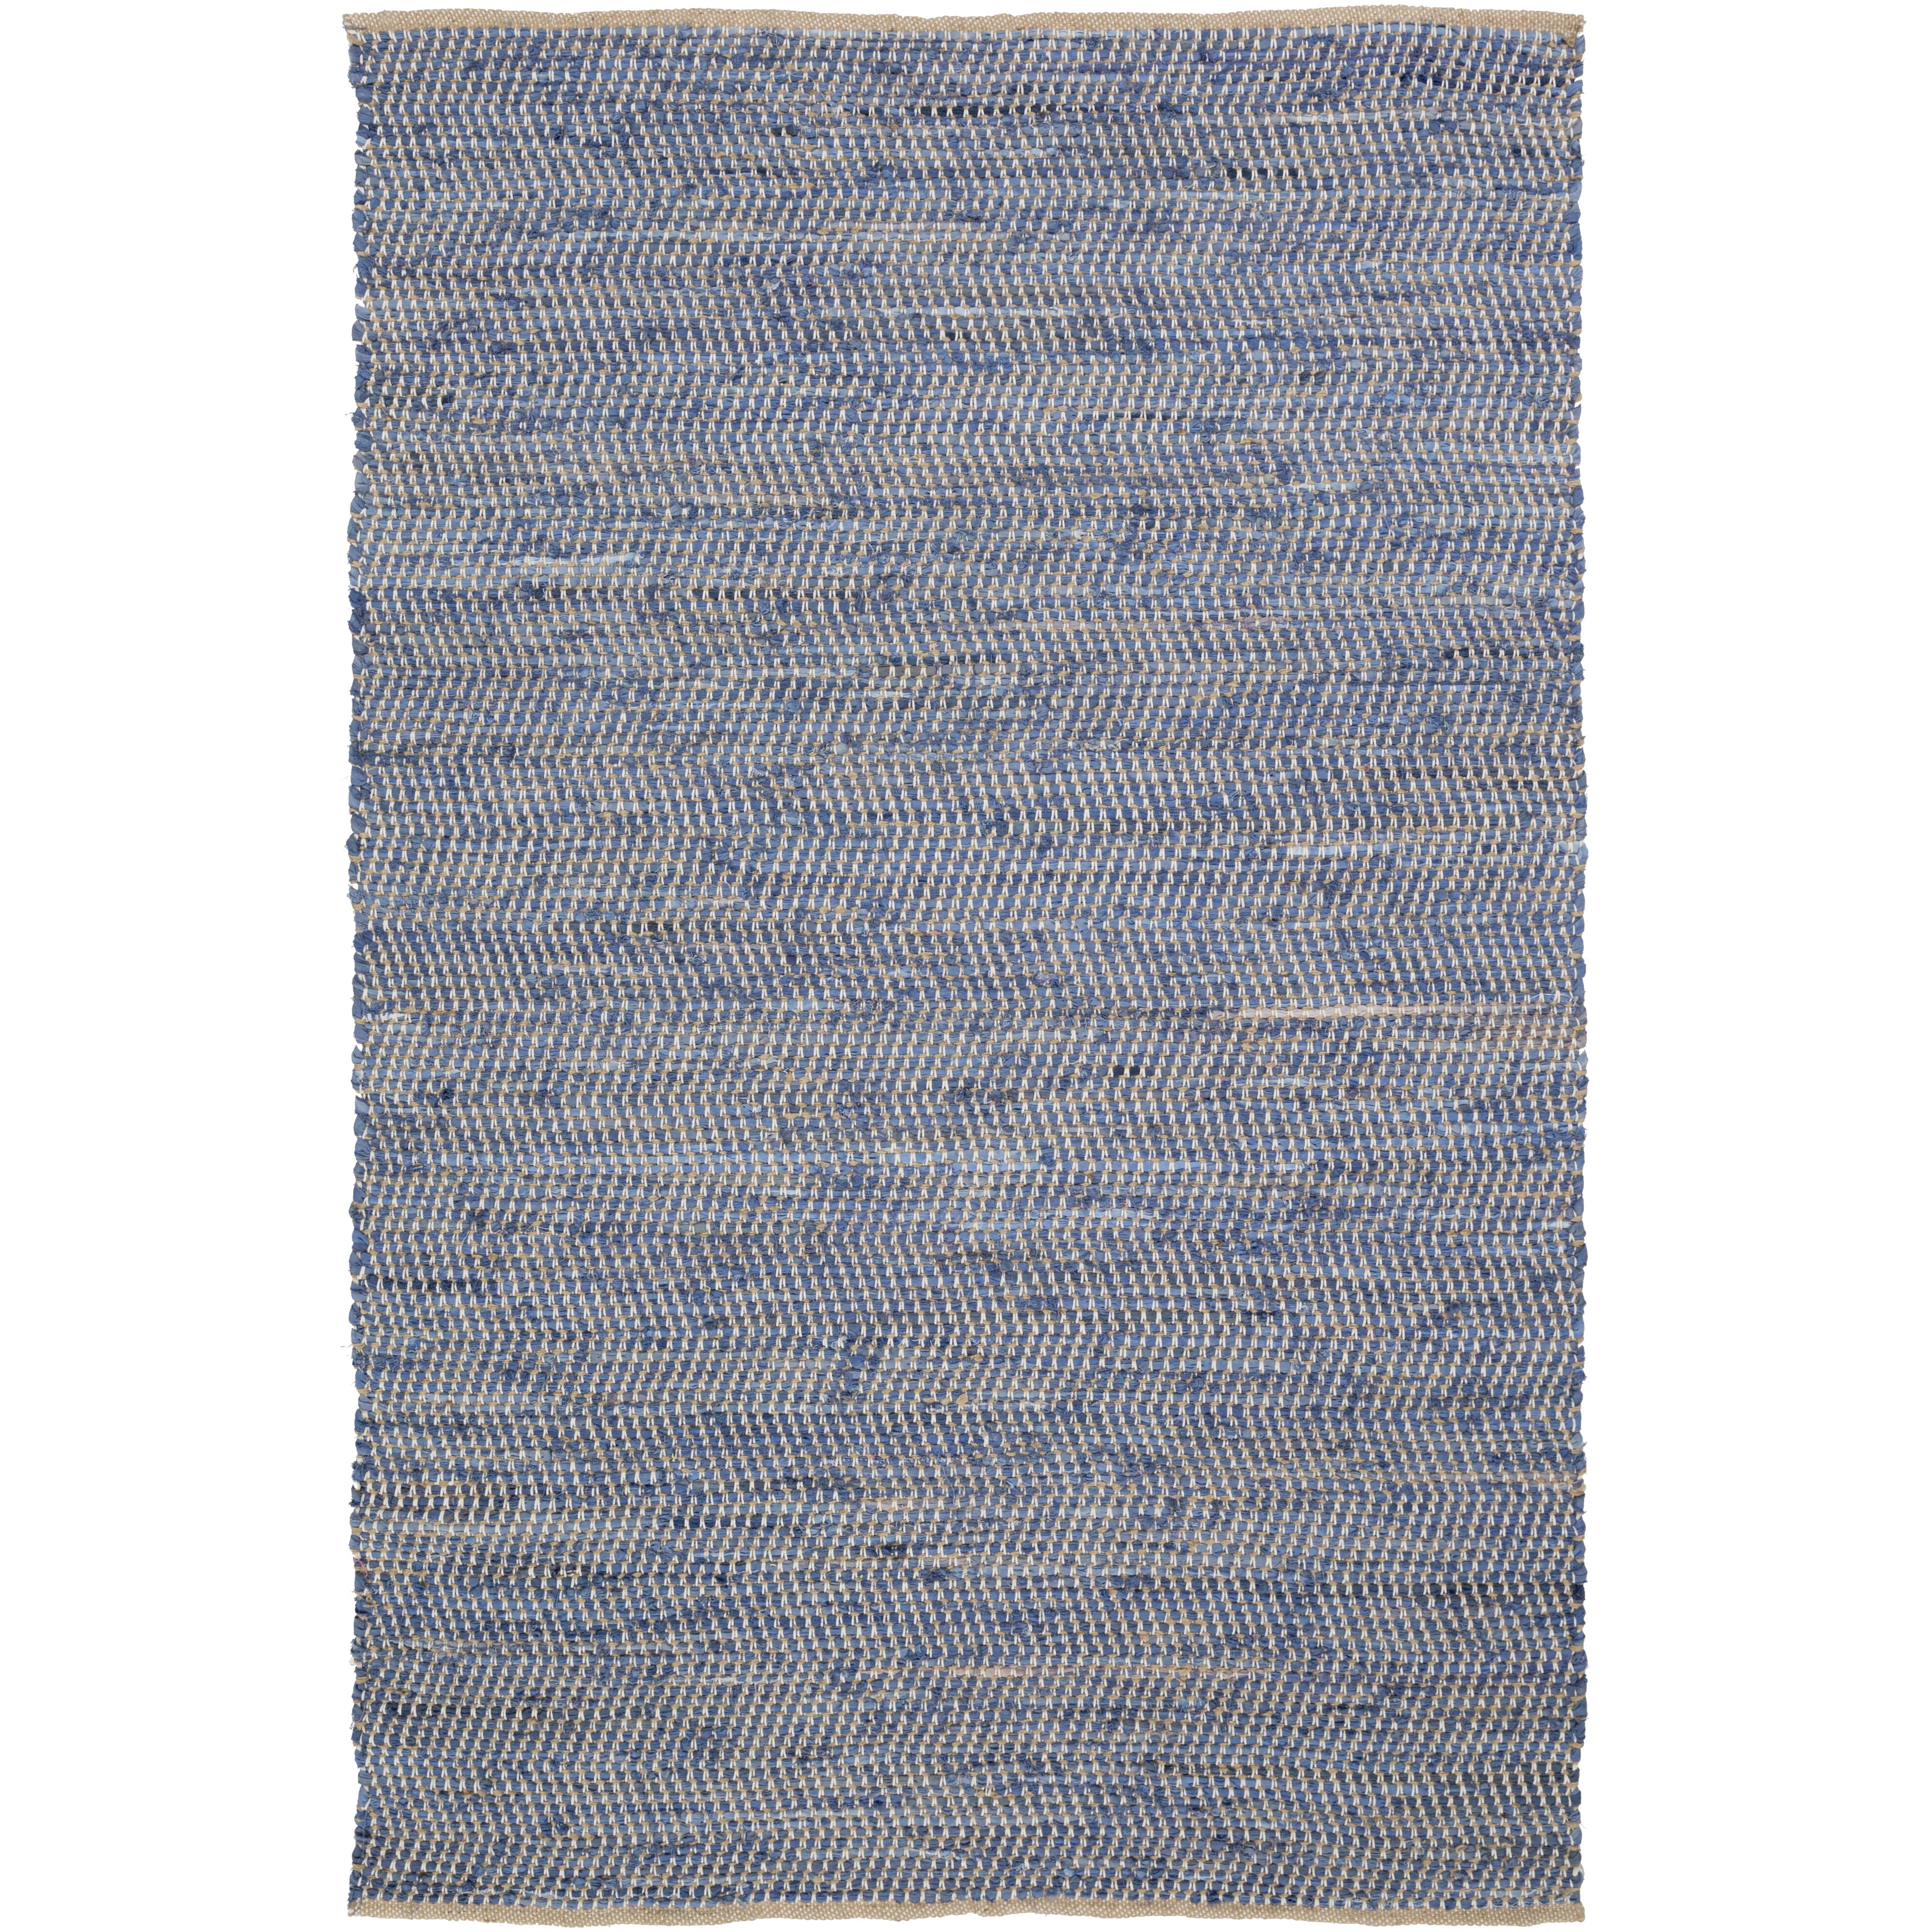 Surya Rugs Fanore 5' x 8' - Item Number: FAN3002-58